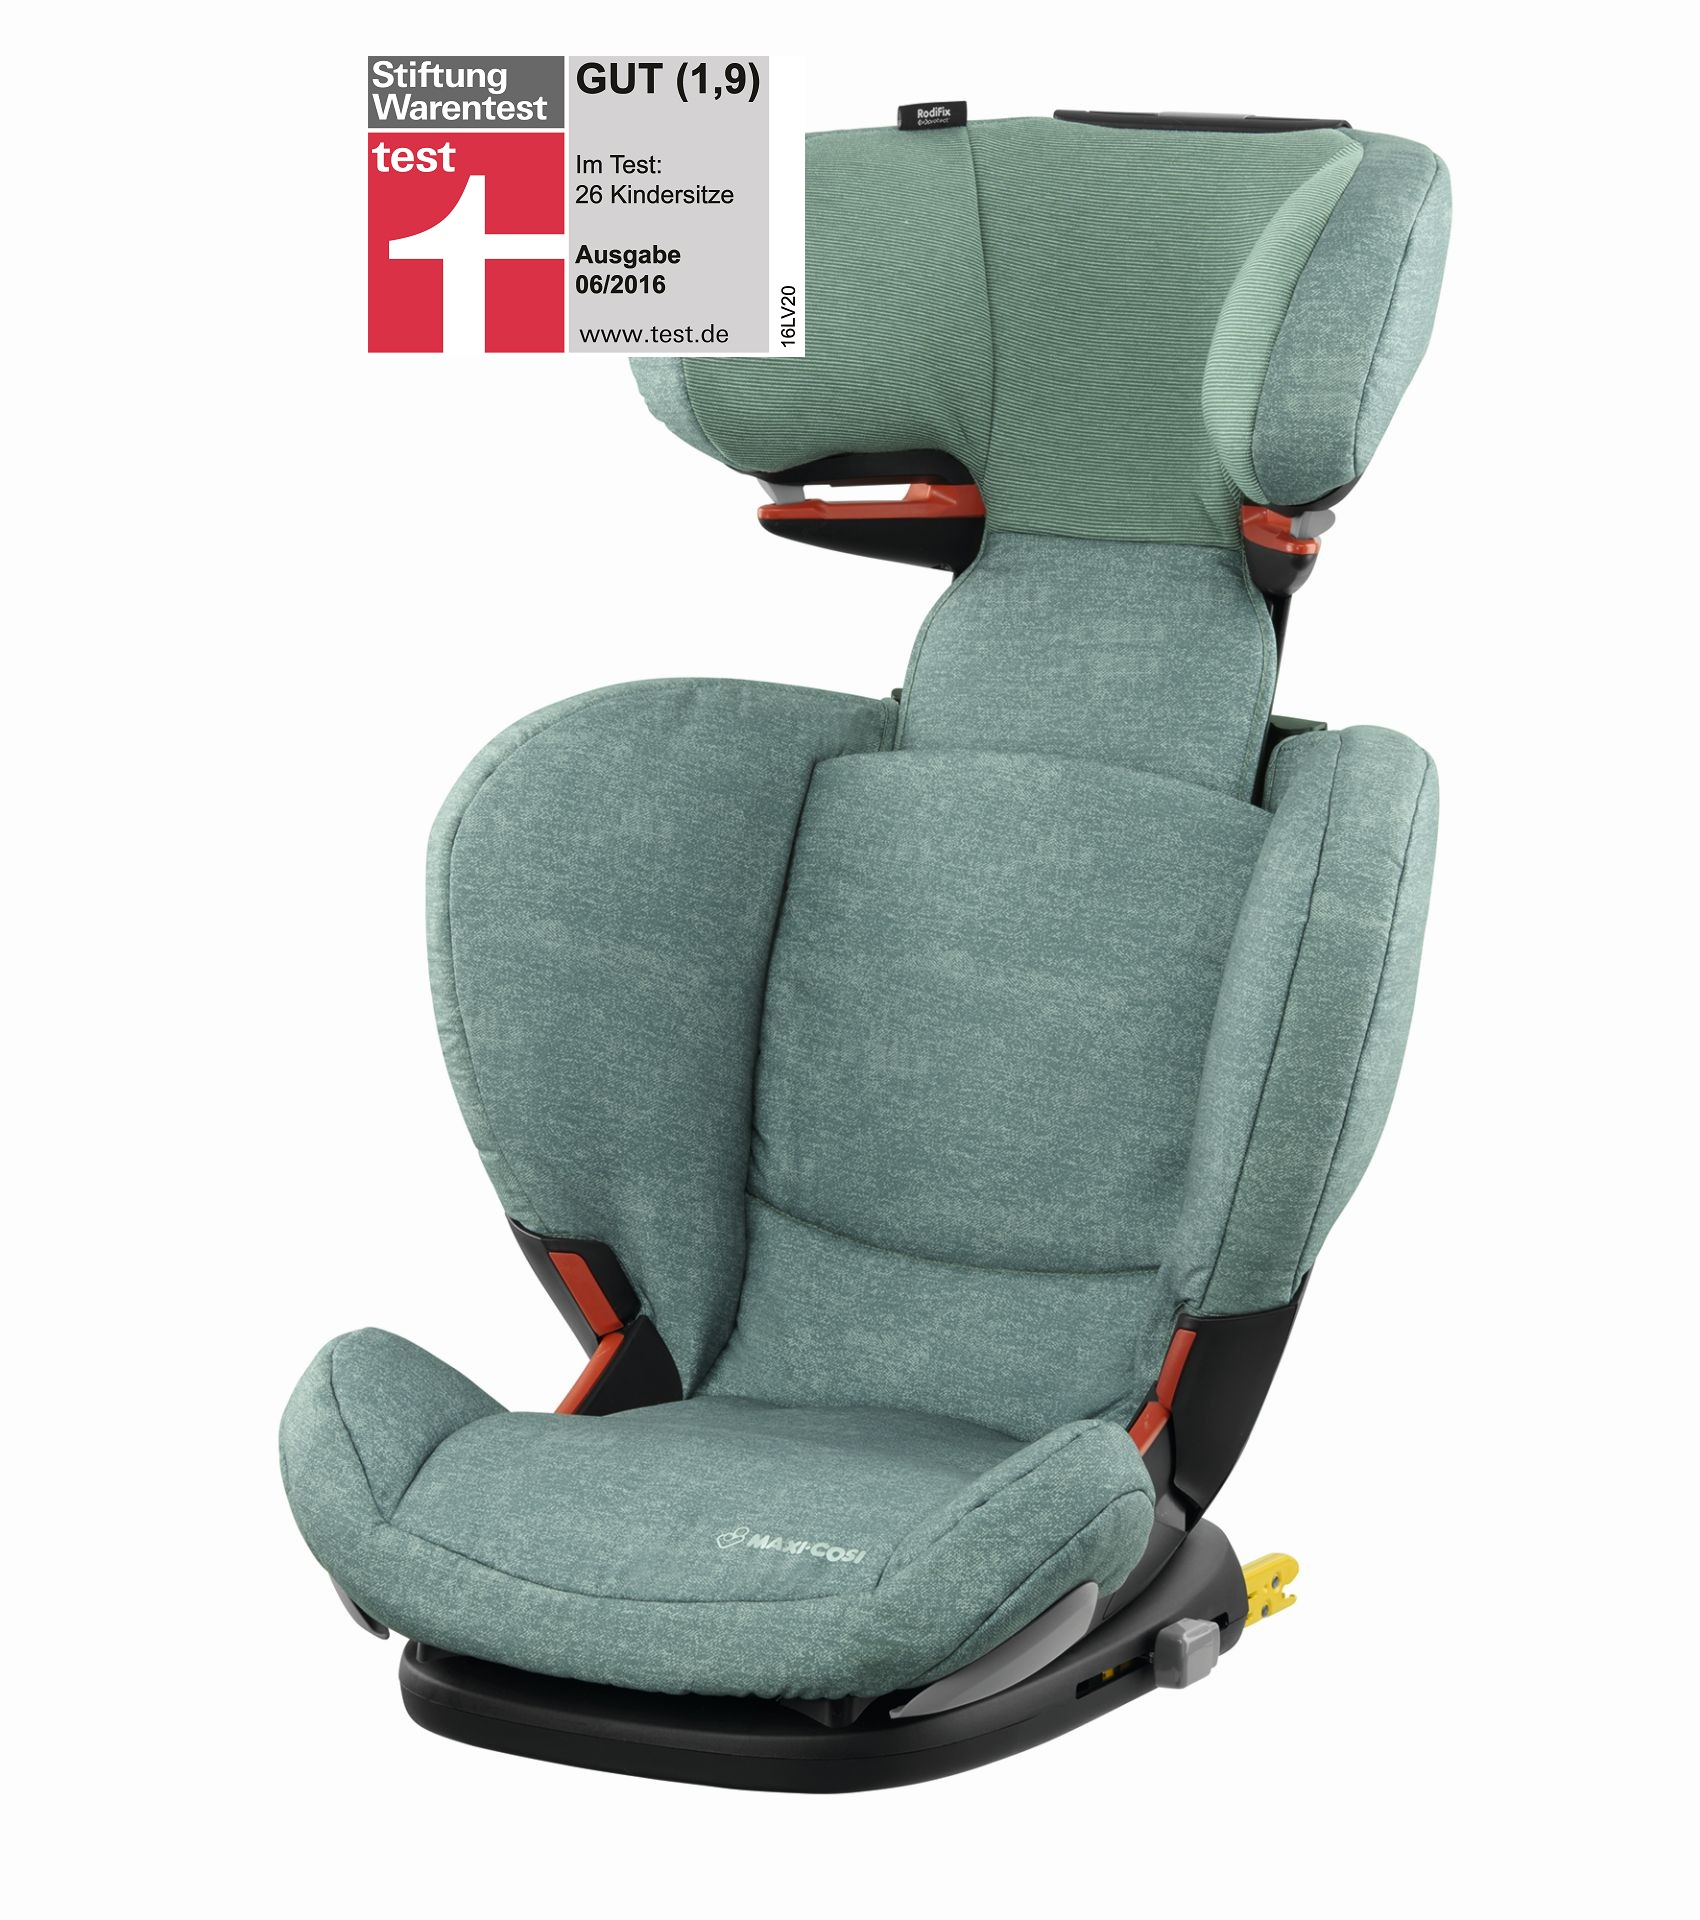 maxi cosi safety seat rodifix airprotect 2017 nomad green buy at kidsroom car seats. Black Bedroom Furniture Sets. Home Design Ideas